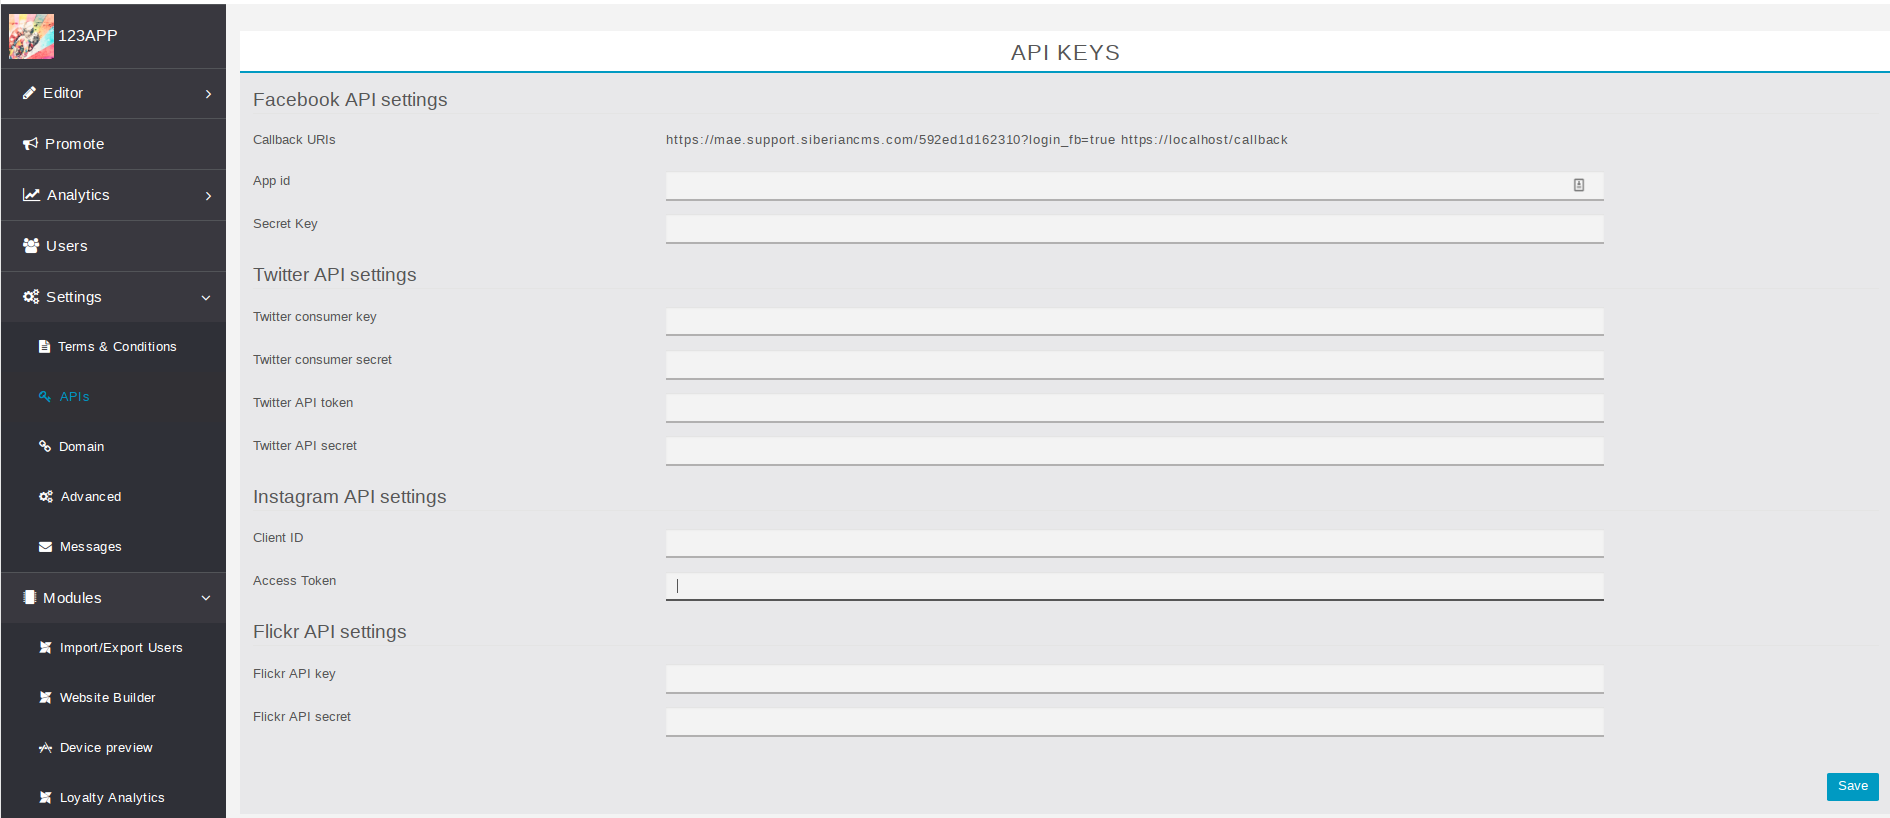 How to create API keys for Facebook, Instagram, Flickr and